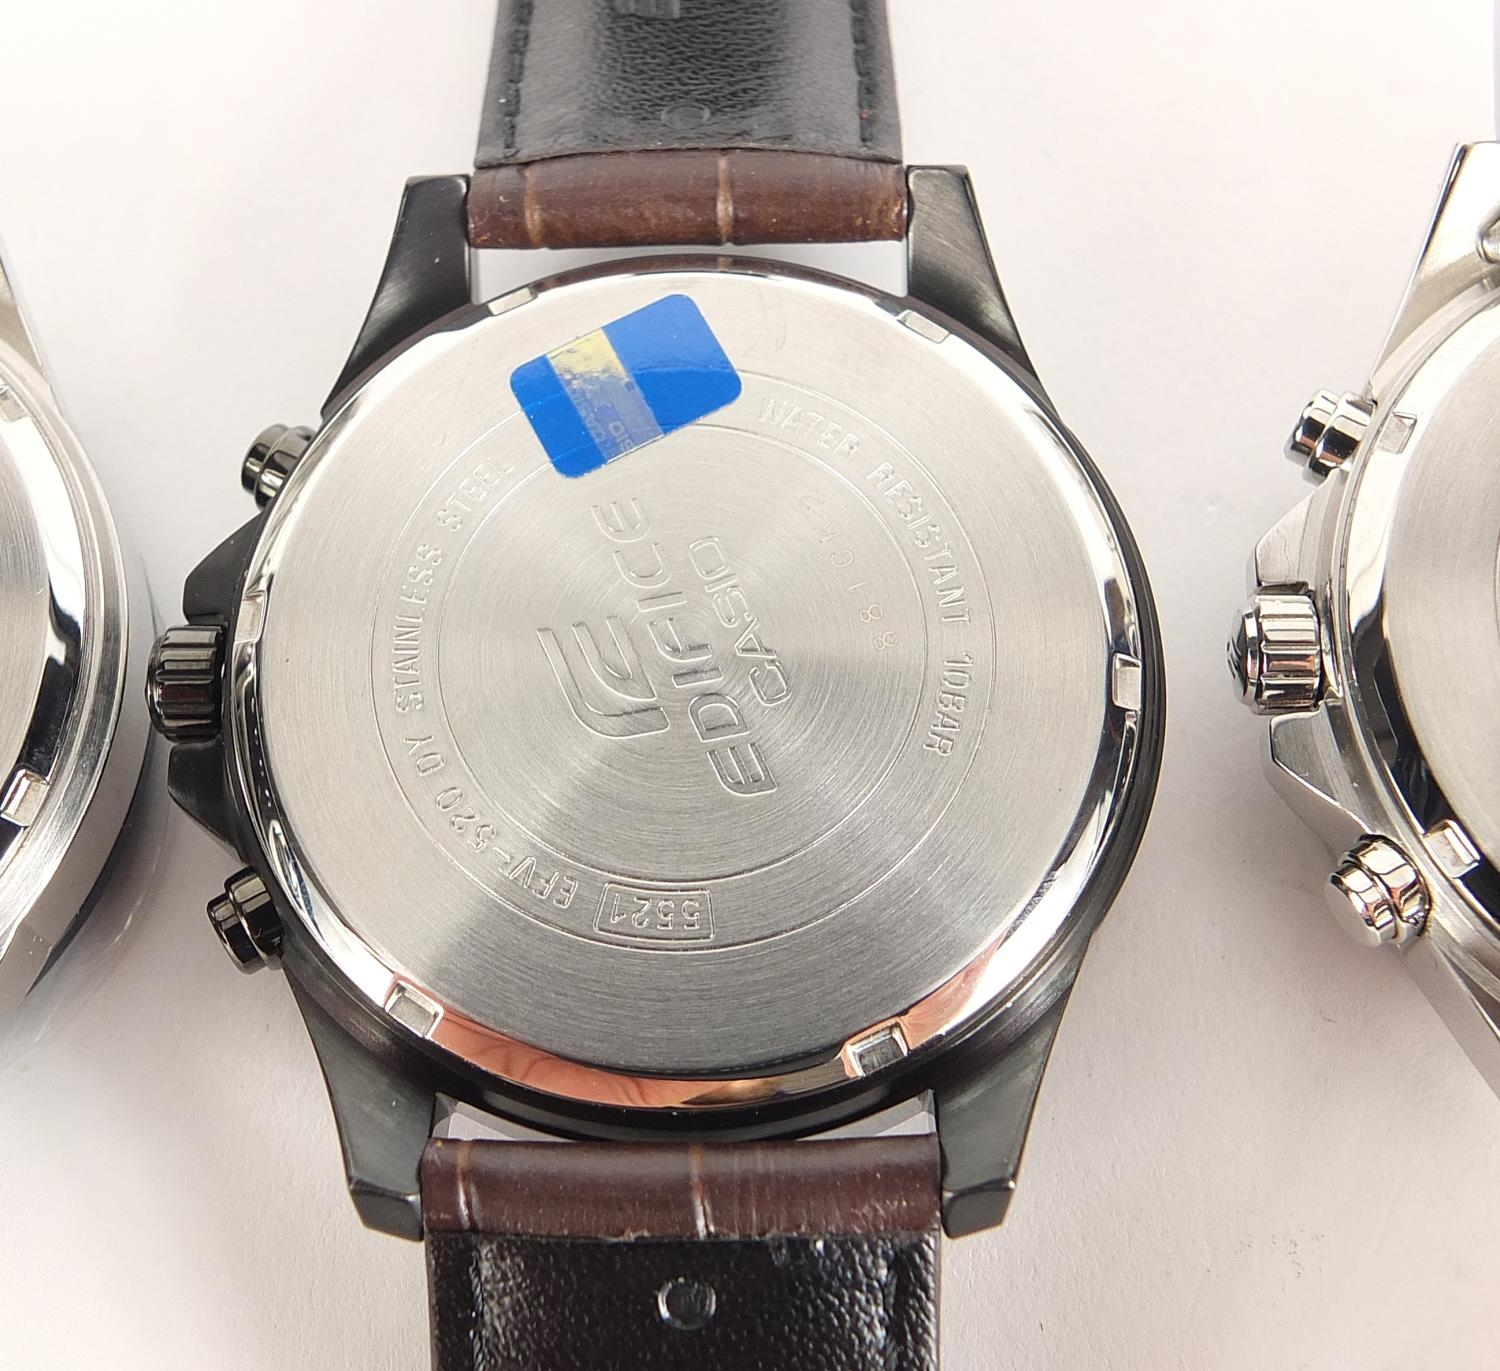 Casio Edifice, three gentlemen's wristwatches with boxes numbered 76E2AU, 776KM0 and 881CK2 :For - Image 6 of 8